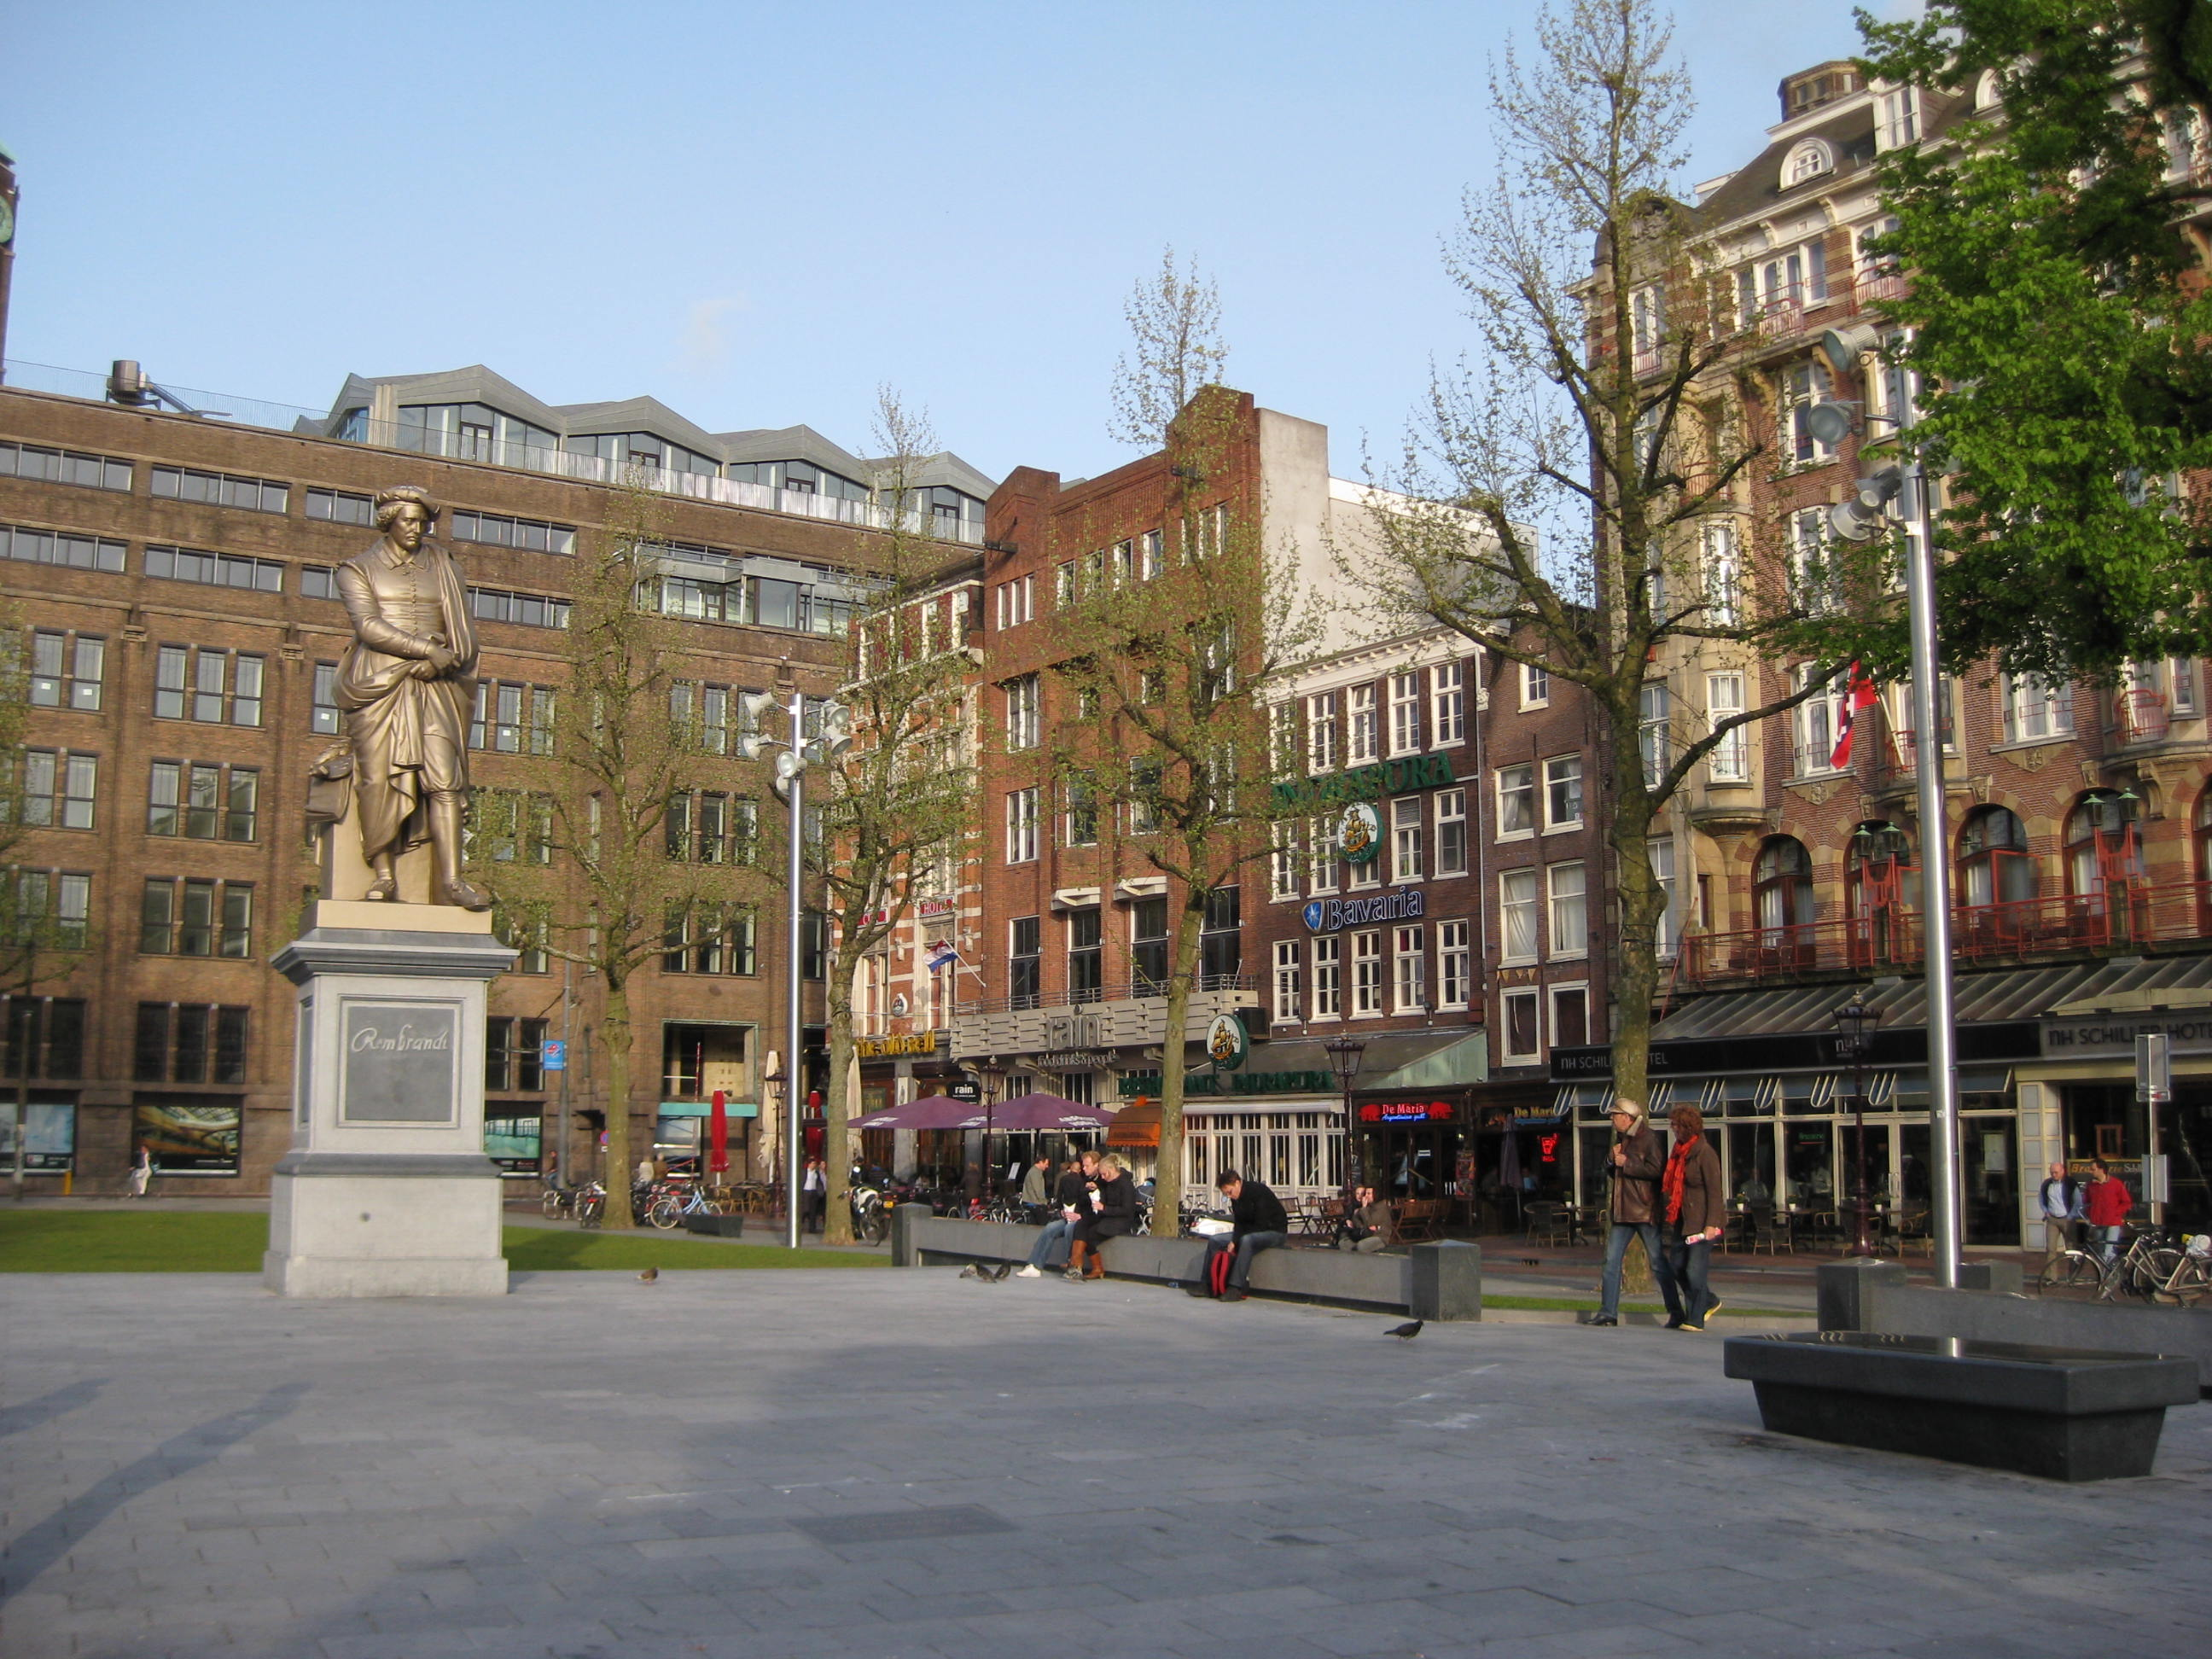 Make room for Rembrandtplein in your trip to Amsterdam: www.citytripplanner.com/en/things-to-do_Amsterdam/Rembrandtplein